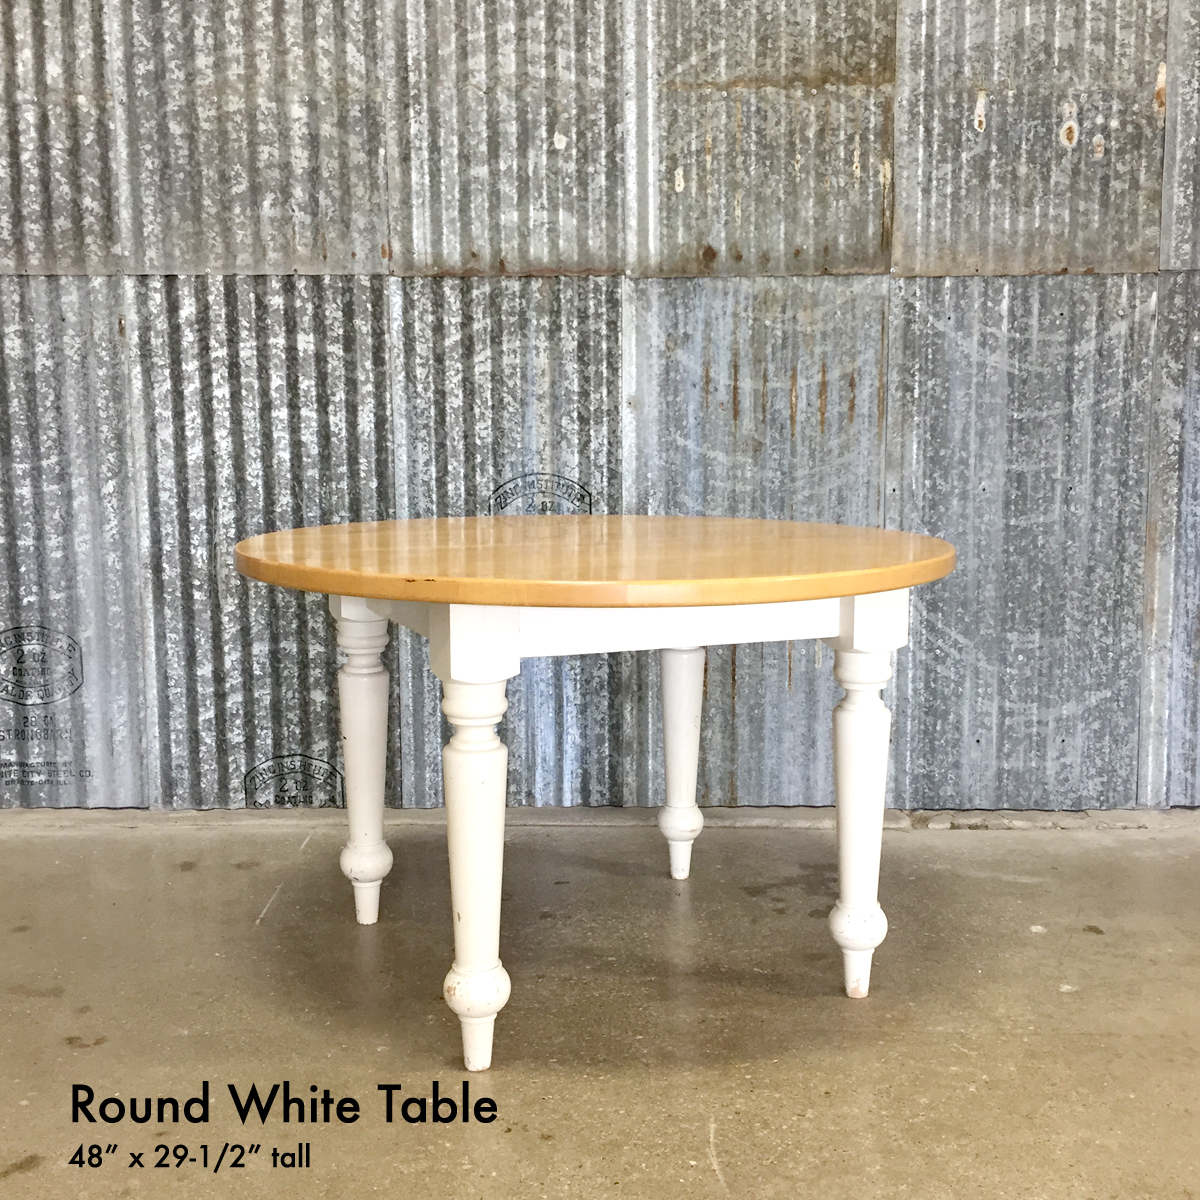 WH-round white table.jpg